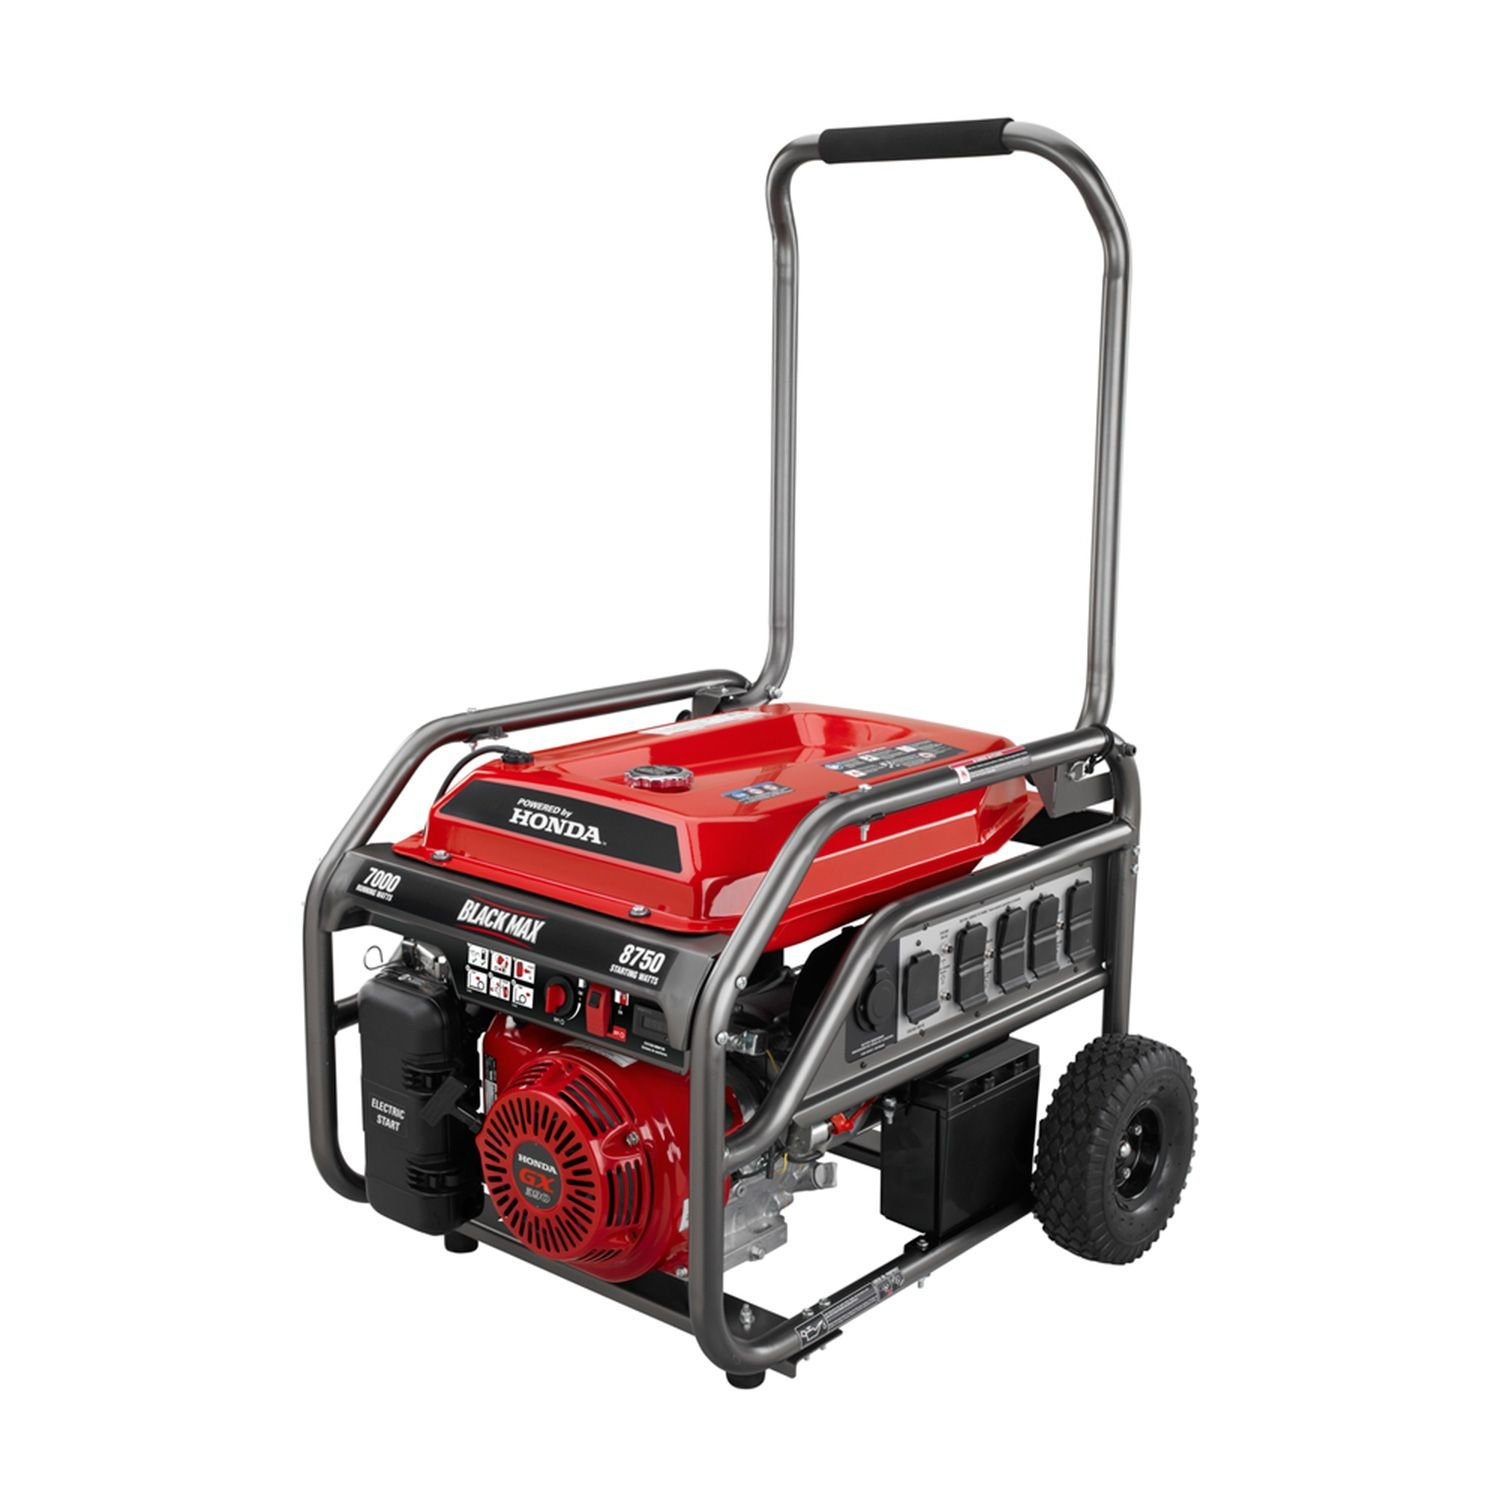 Marvelous Amazon.com: Blackmax Honda Portable Gas Powered Electric Generator Outdoor  Camping With Electric Start 7,000w / 8,750w Watts: Garden U0026 Outdoor